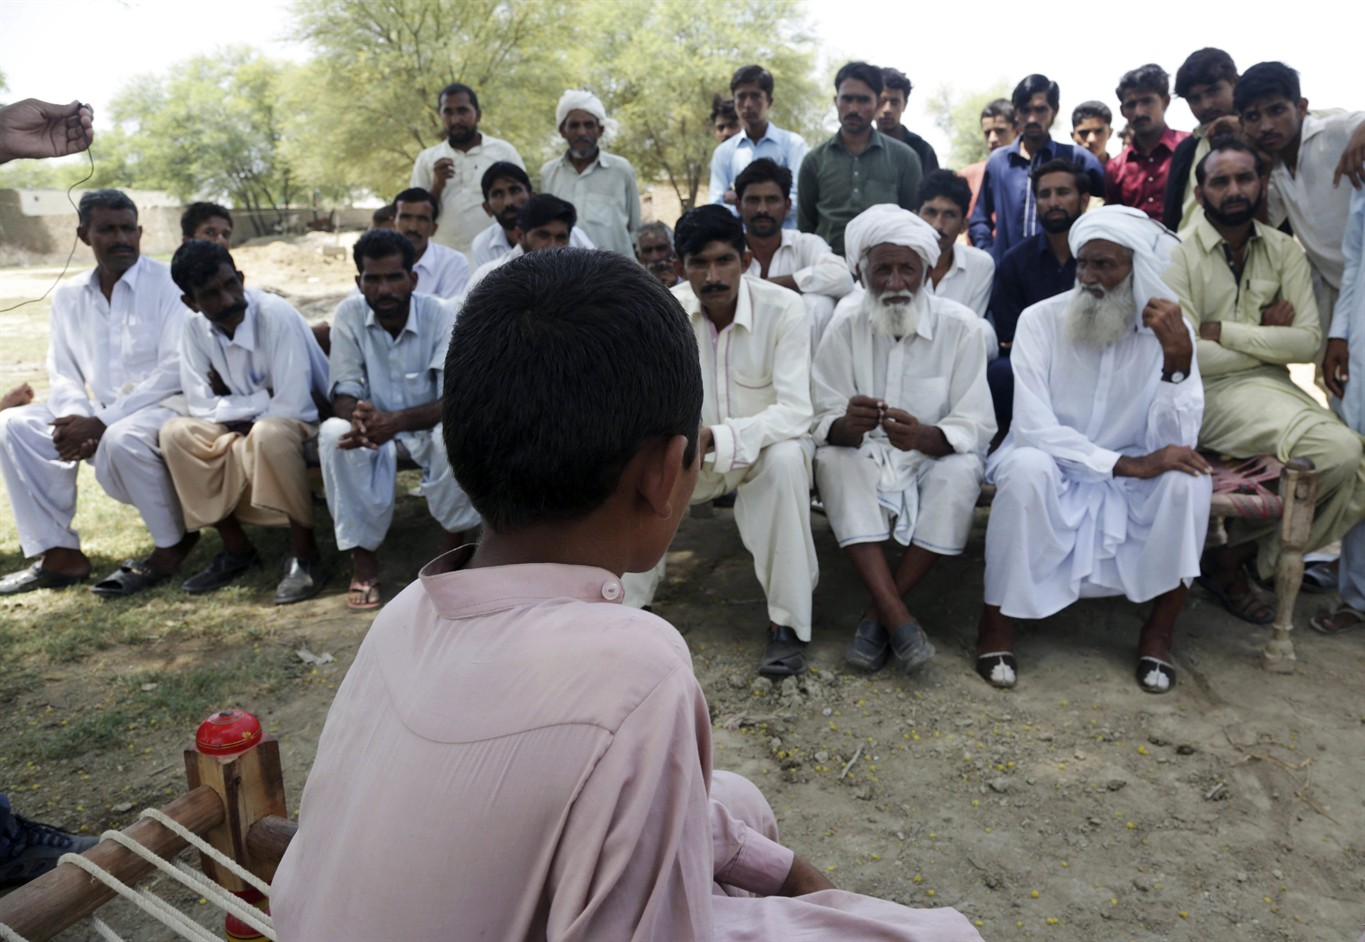 Islamic schools in Pakistan plagued by sex abuse of children